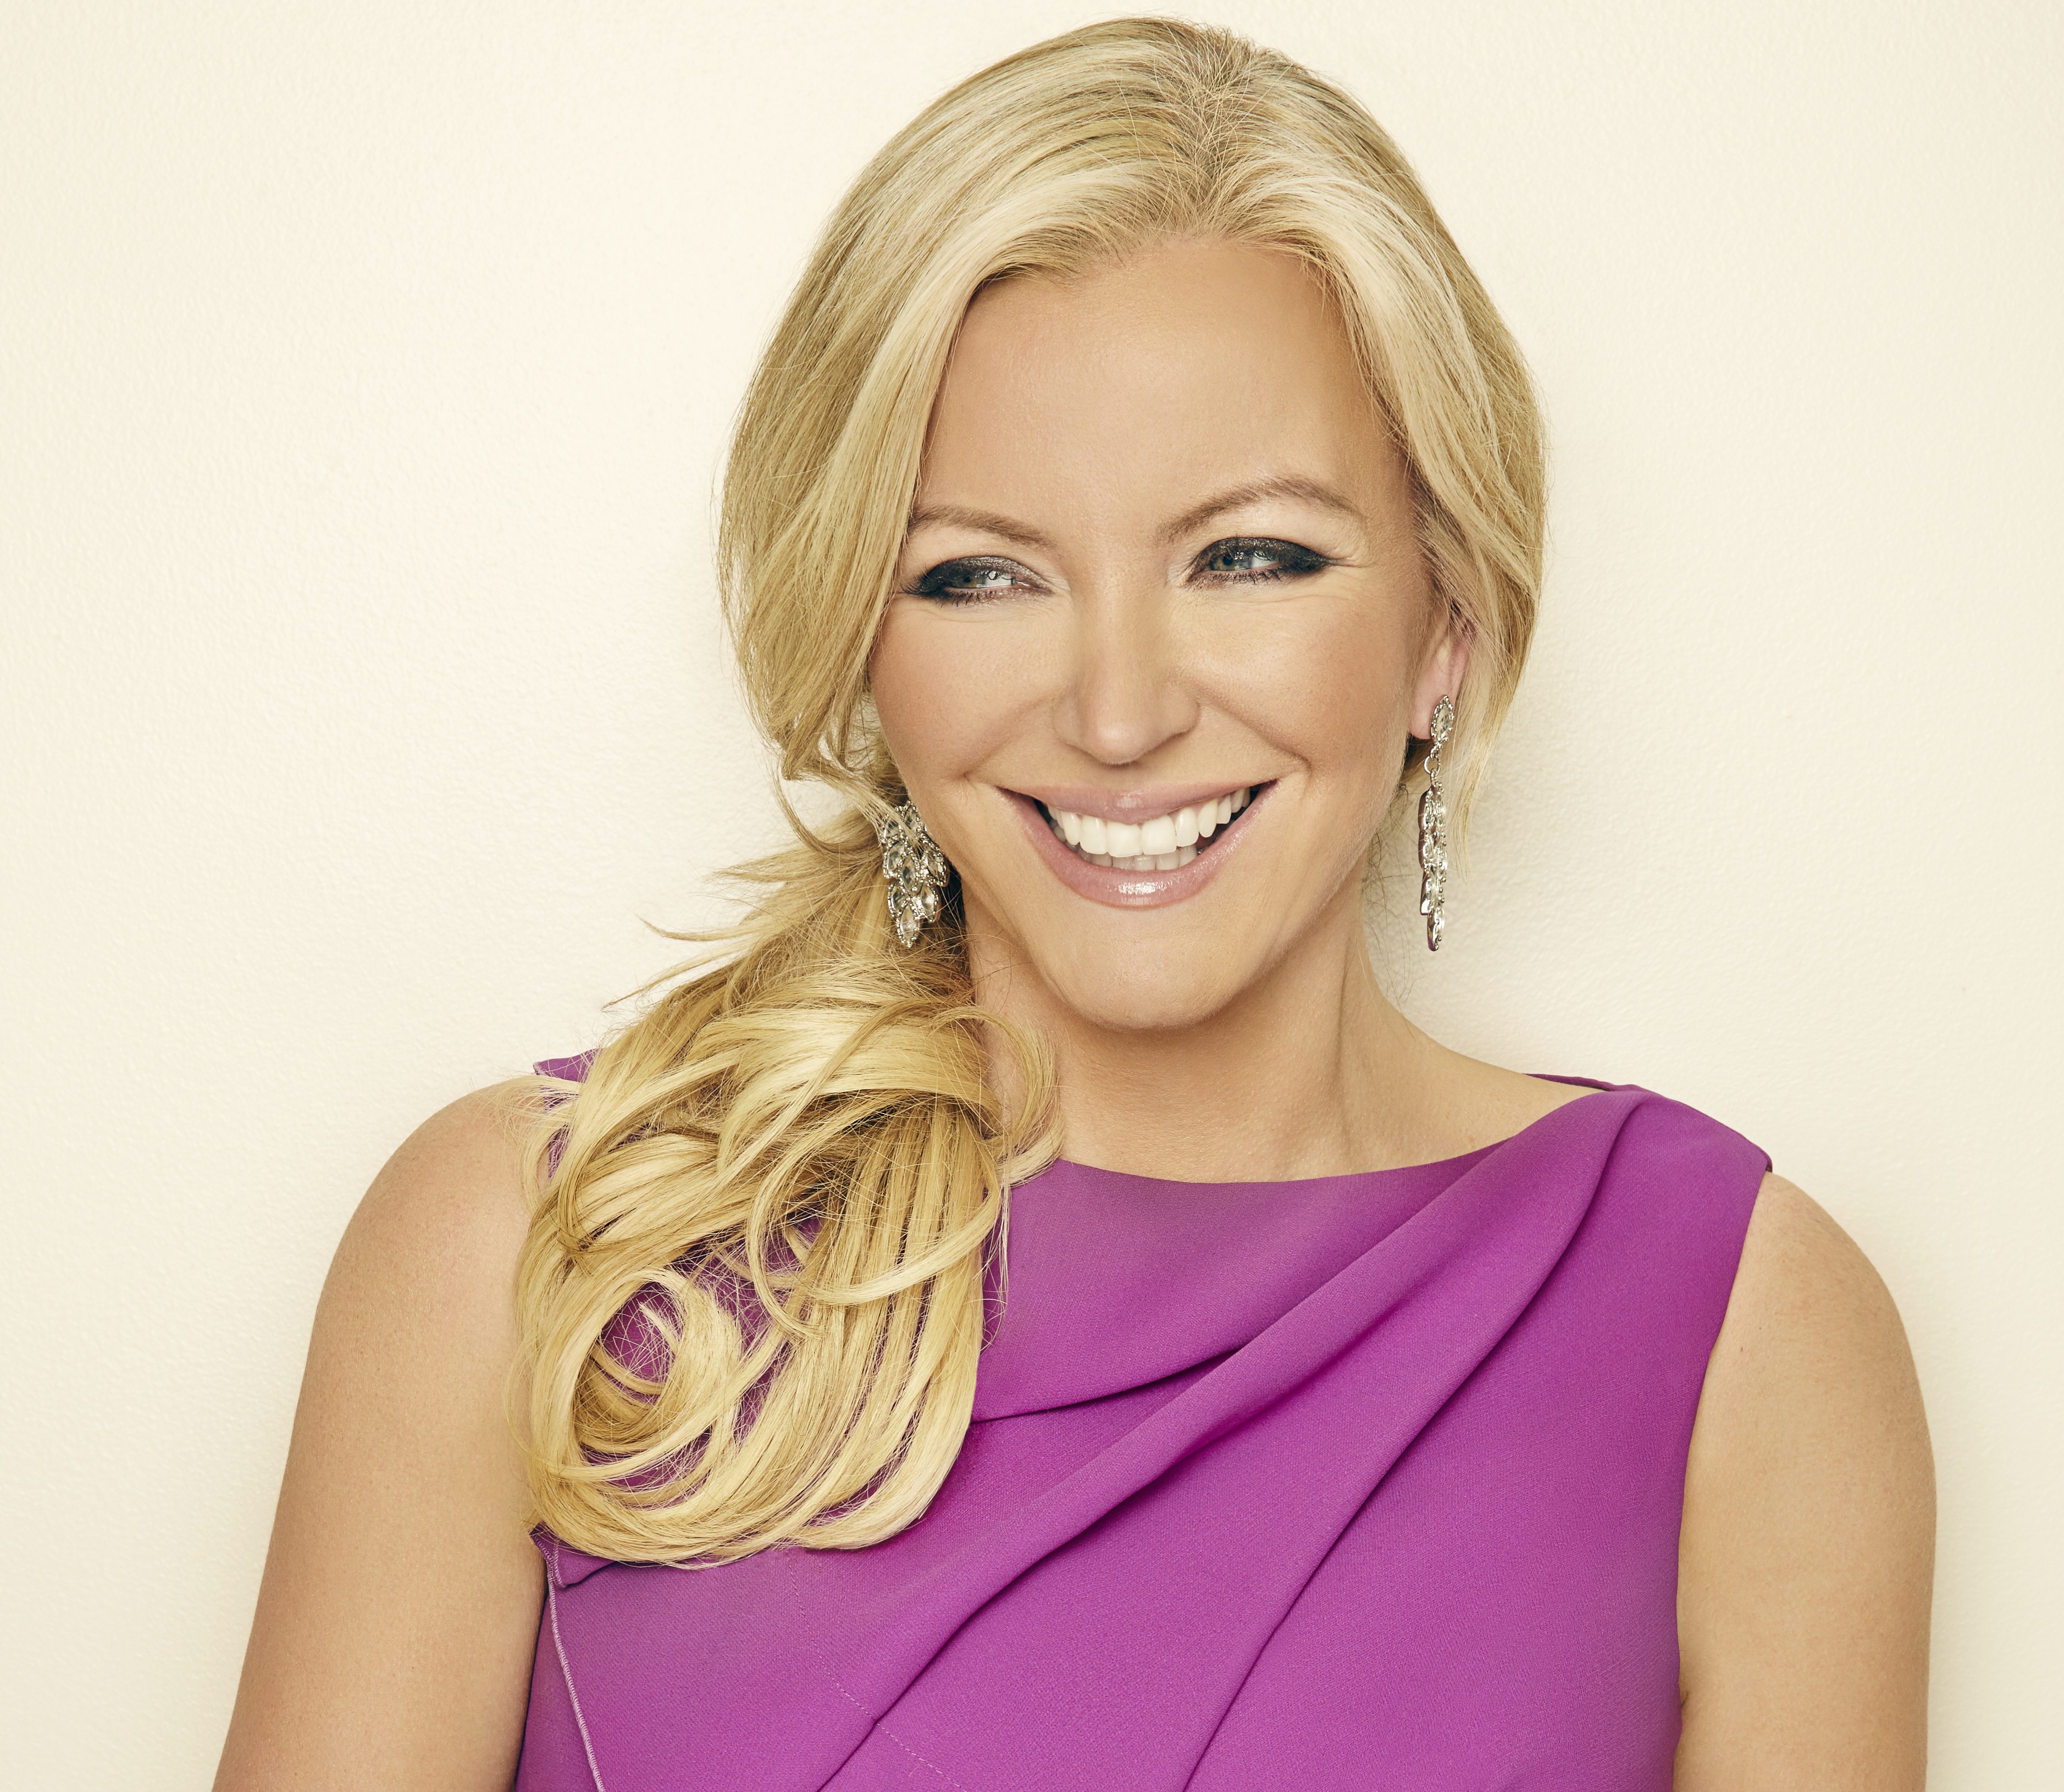 Lingerie entrepreneur Michelle Mone leaves Scotland and blasts SNP